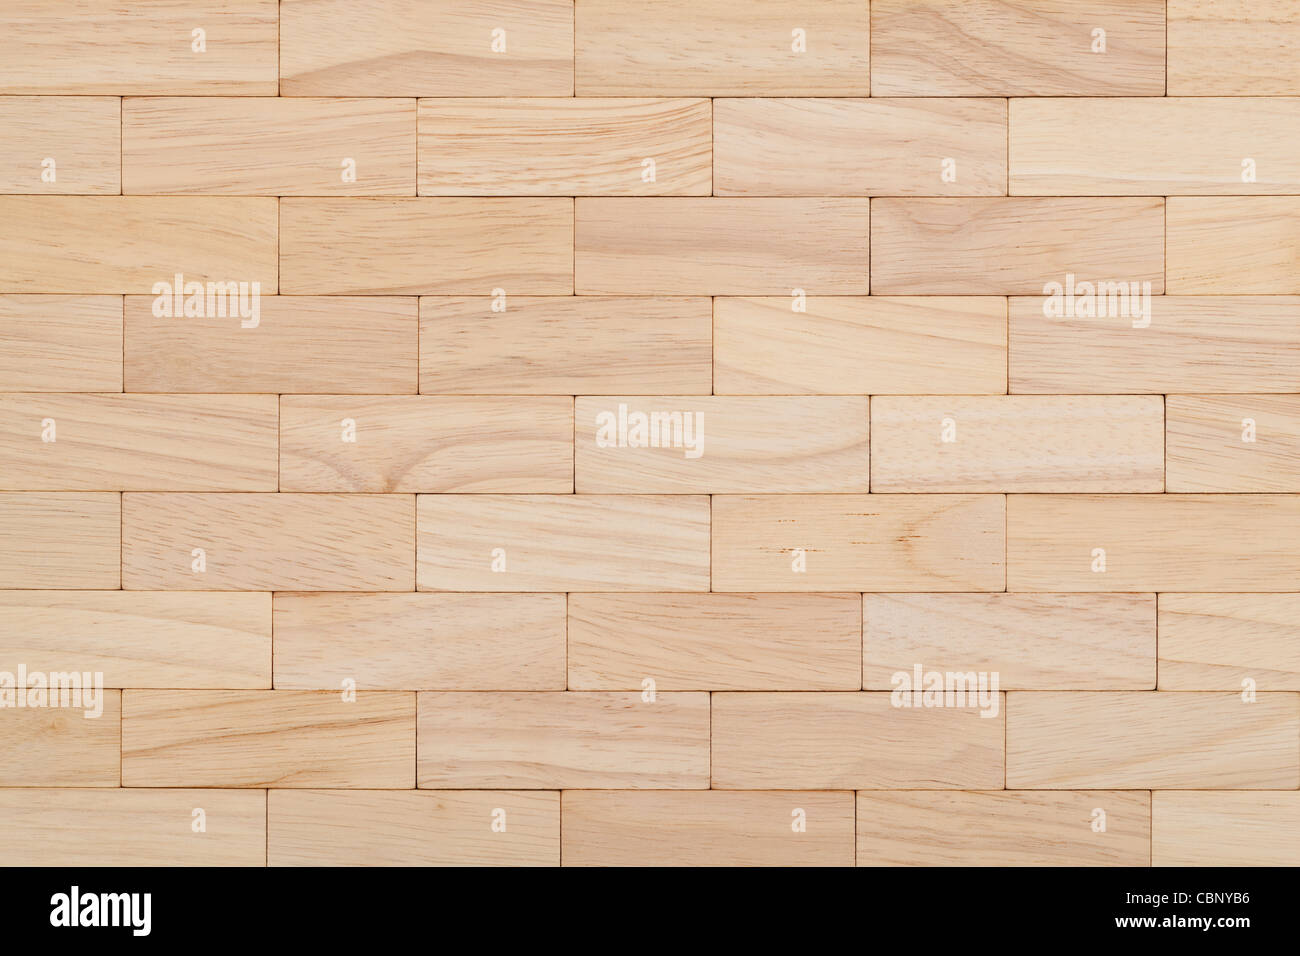 parquet beech in pale color as background - Stock Image